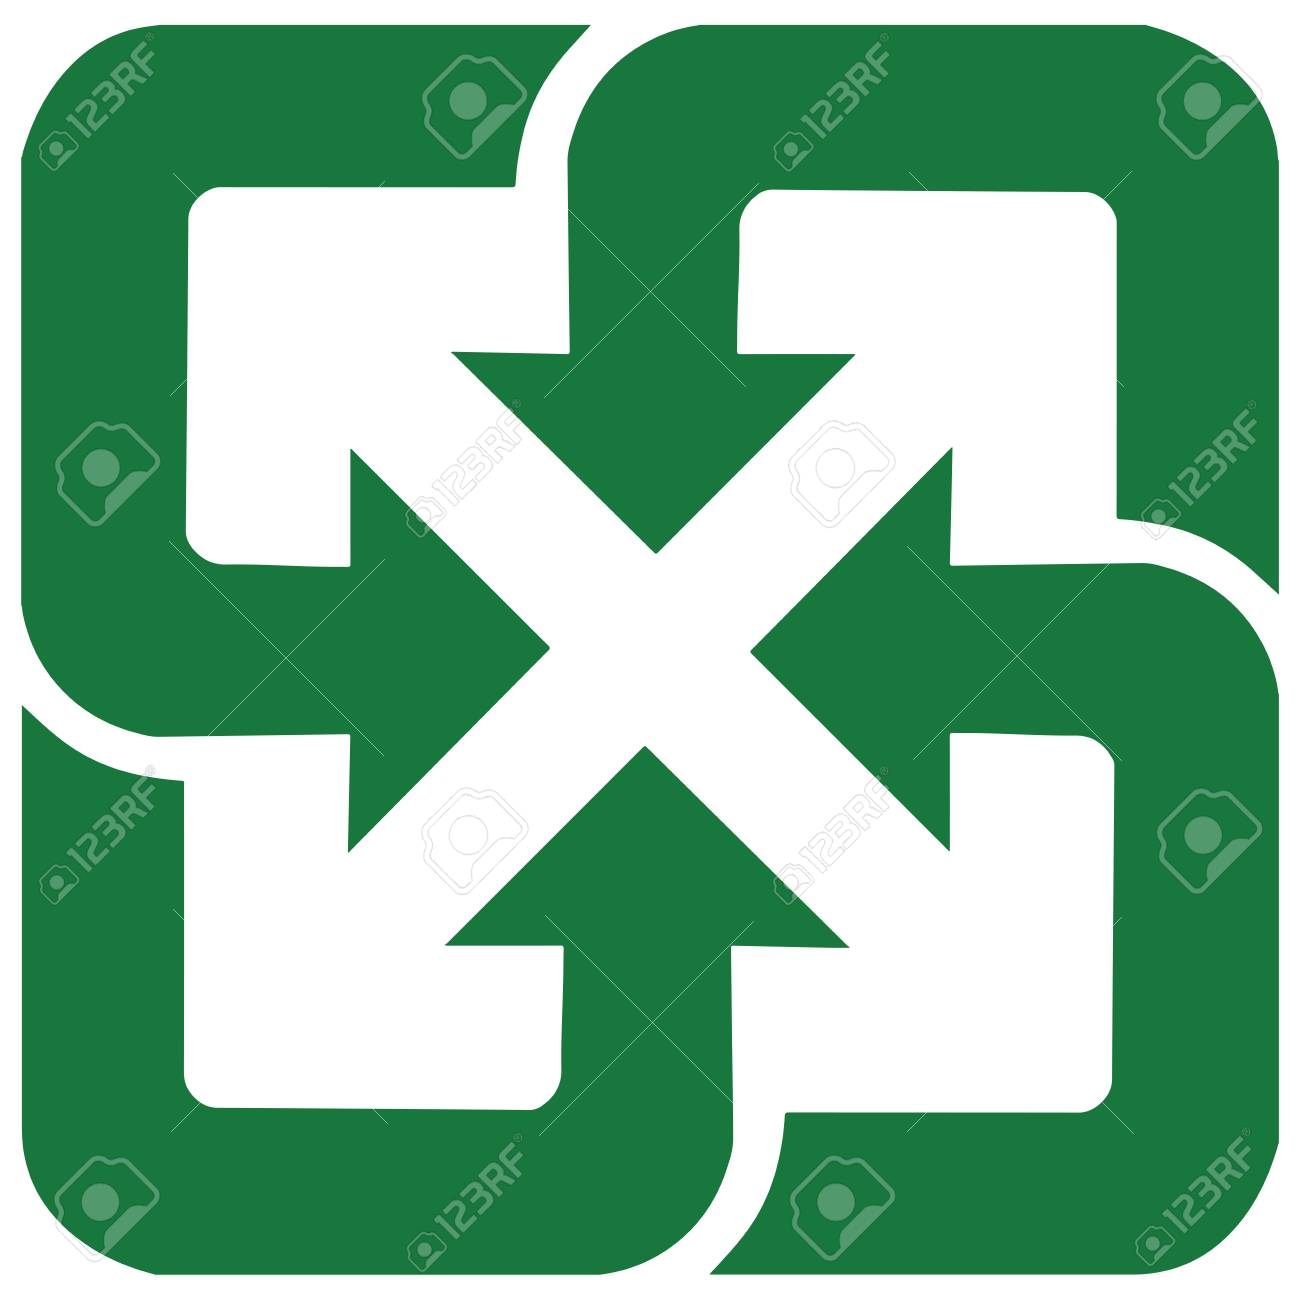 Taiwan Recycling Symbol Vector World Wide Clip Art Website